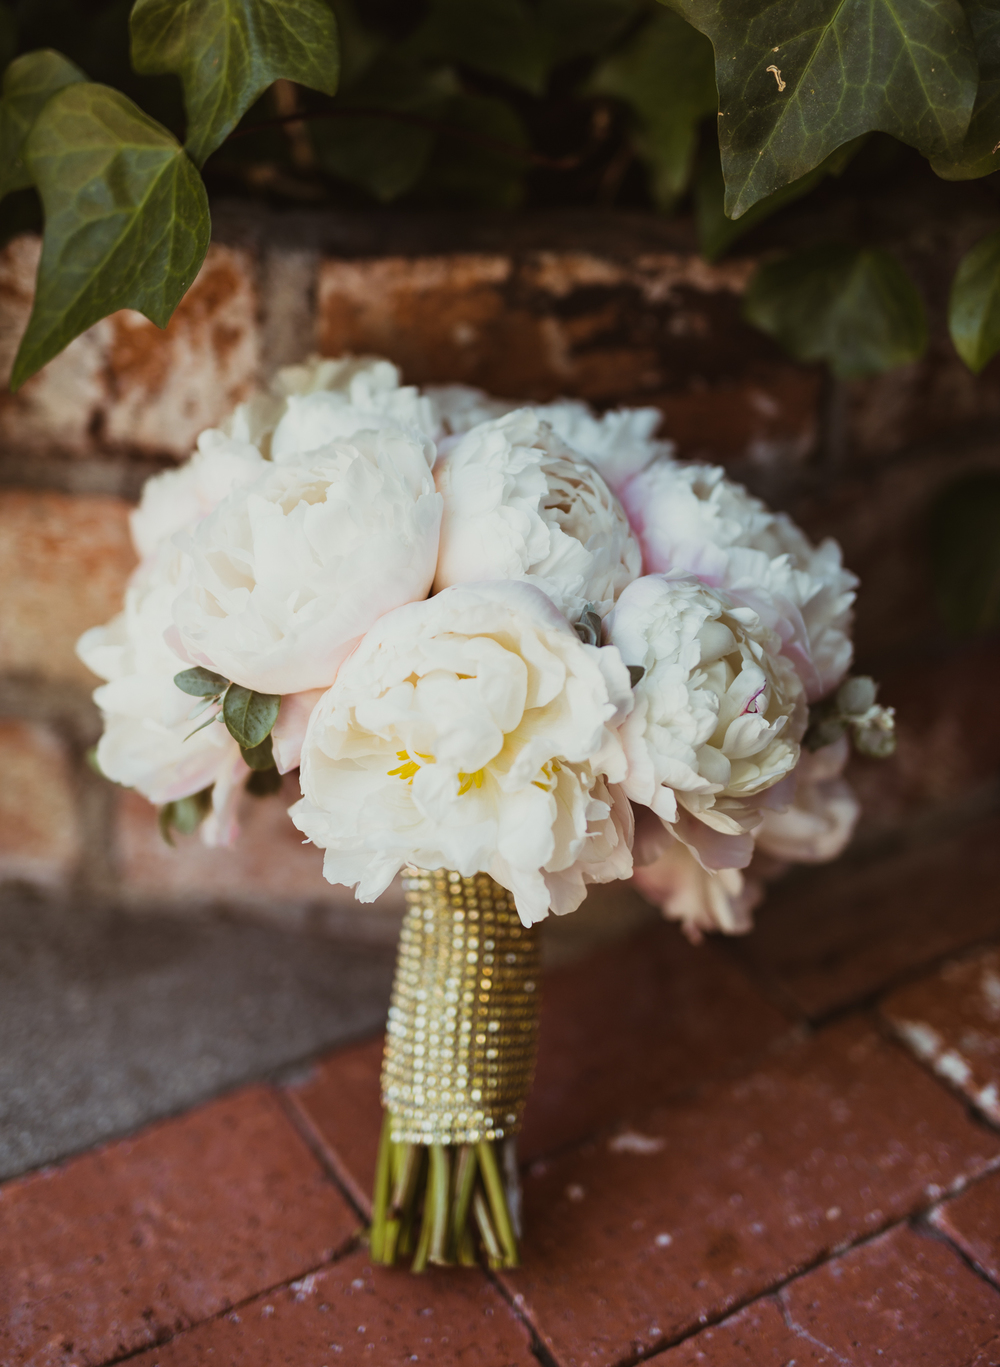 ©Isaiah & Taylor Photography - Inn of the Seventh Ray Wedding, Topanga Canyon California-21.jpg